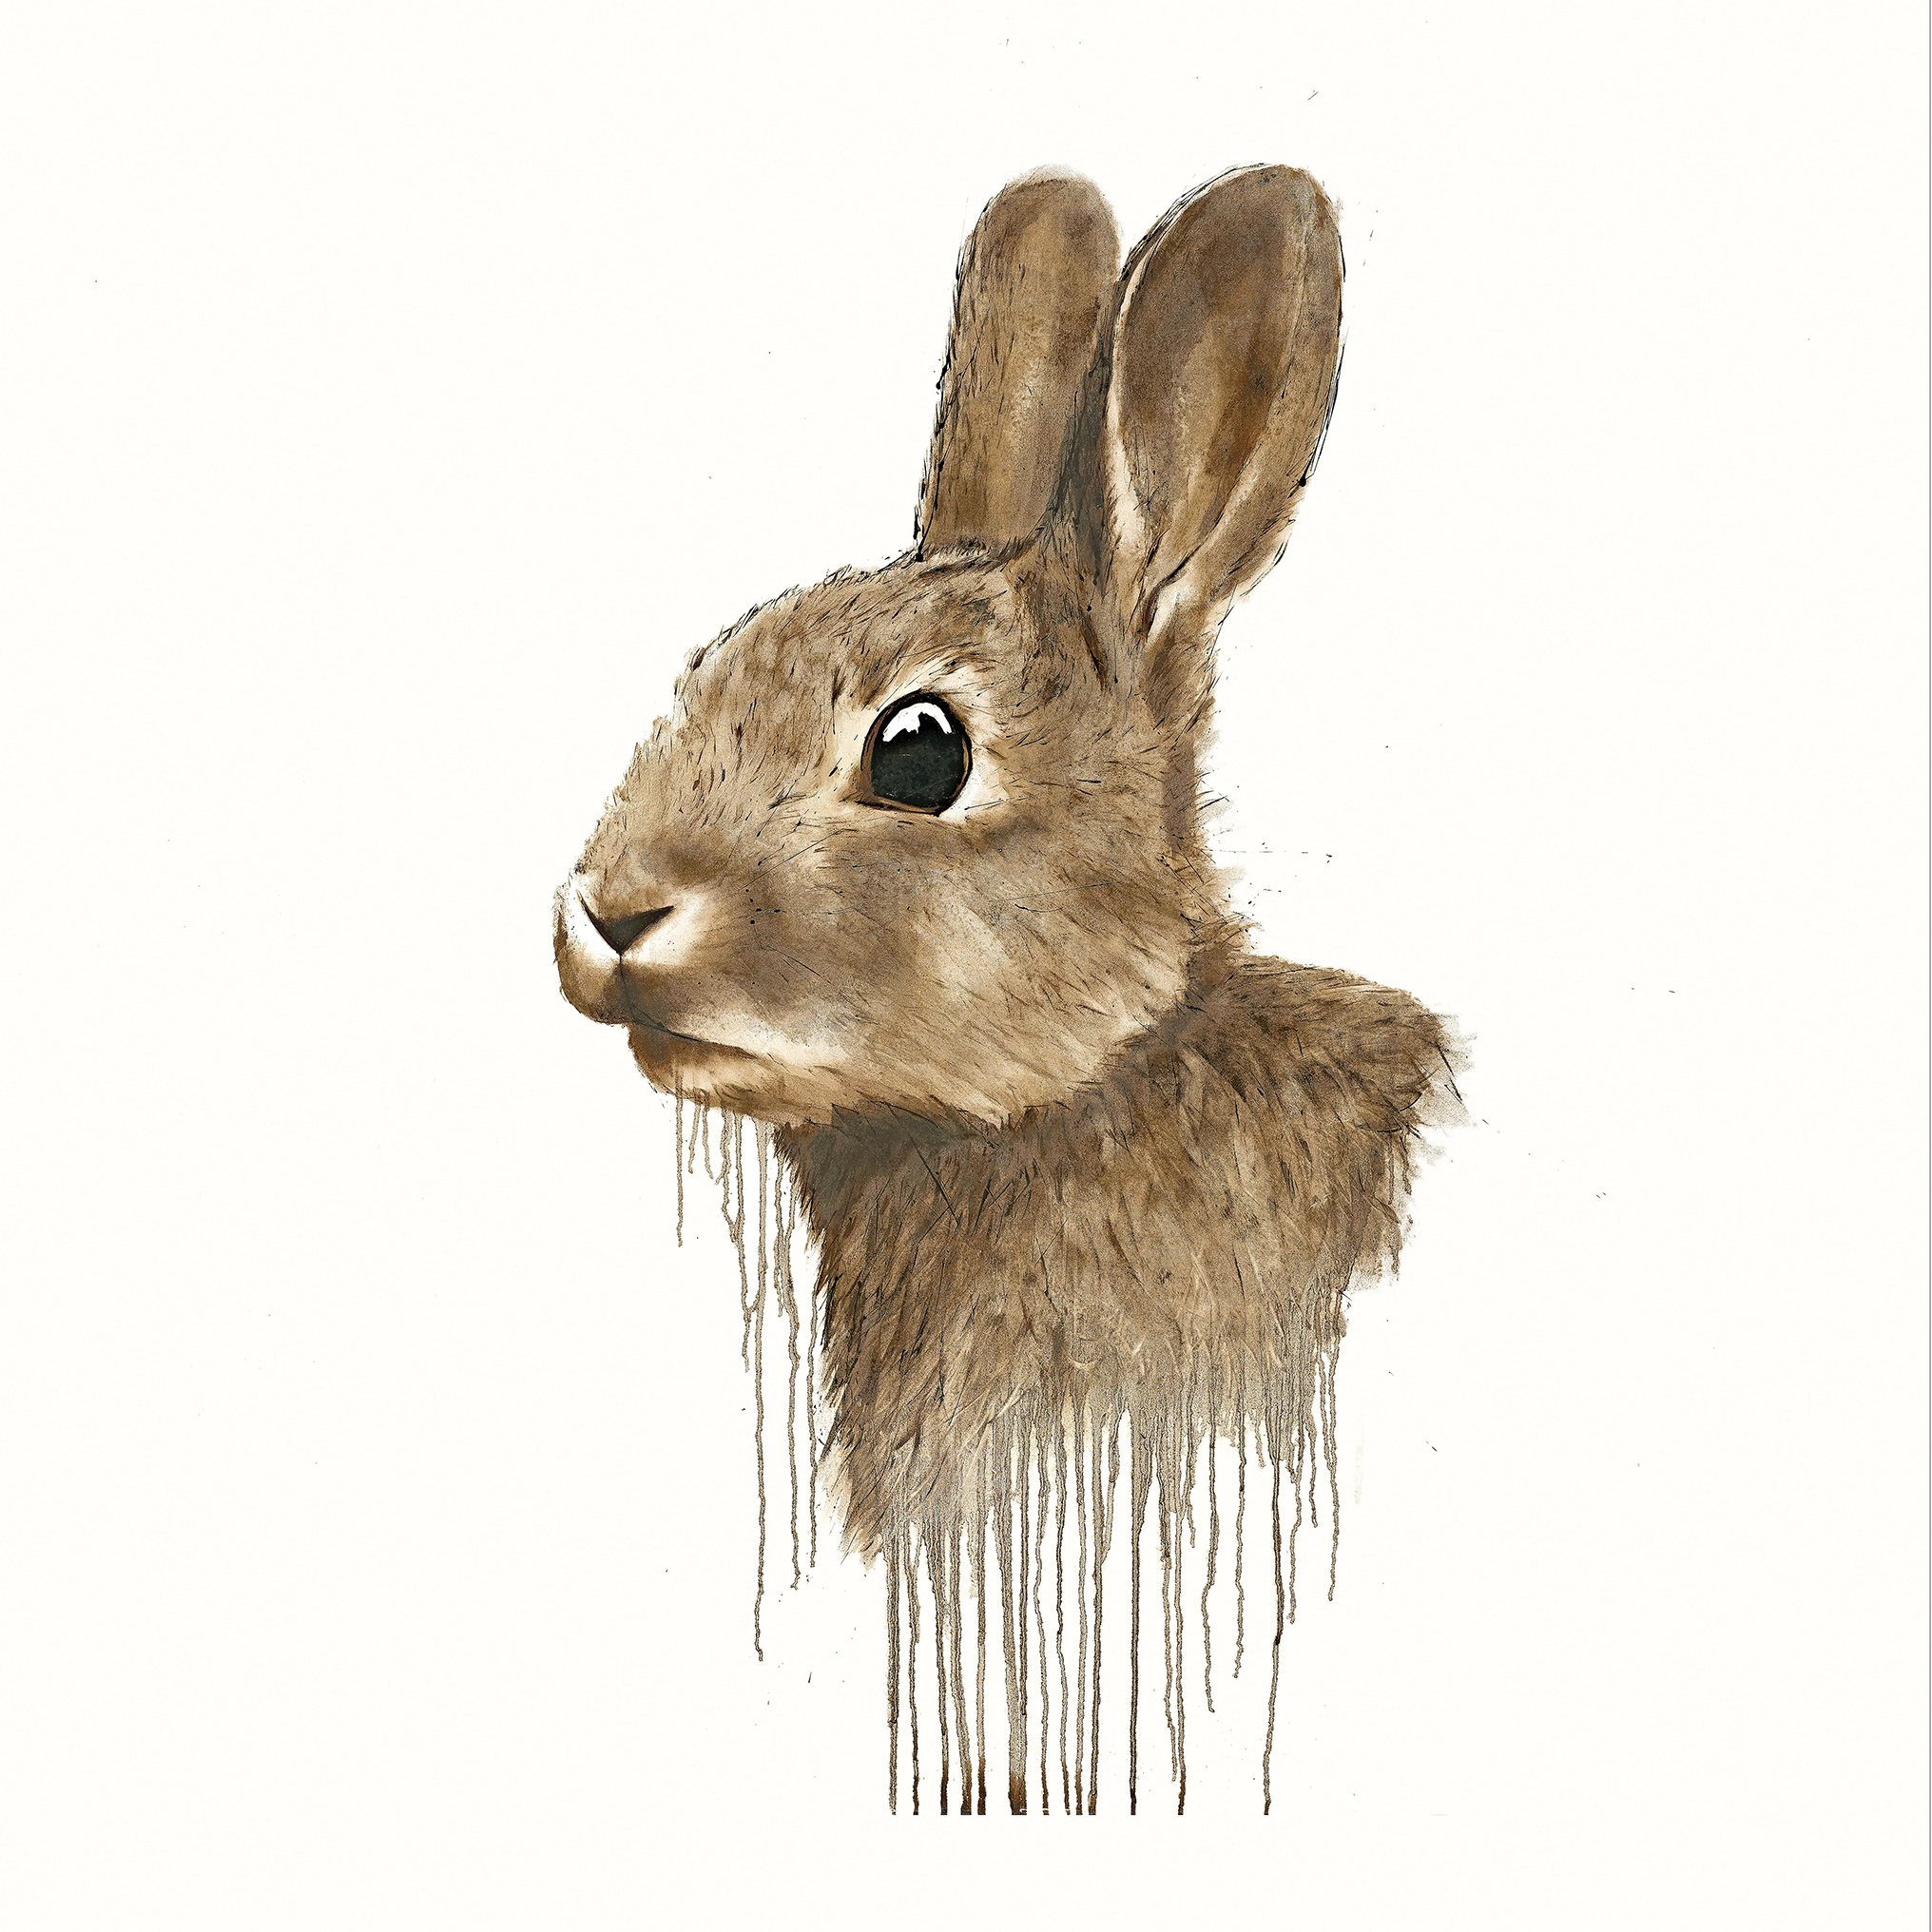 Cotton Tail by David Rees